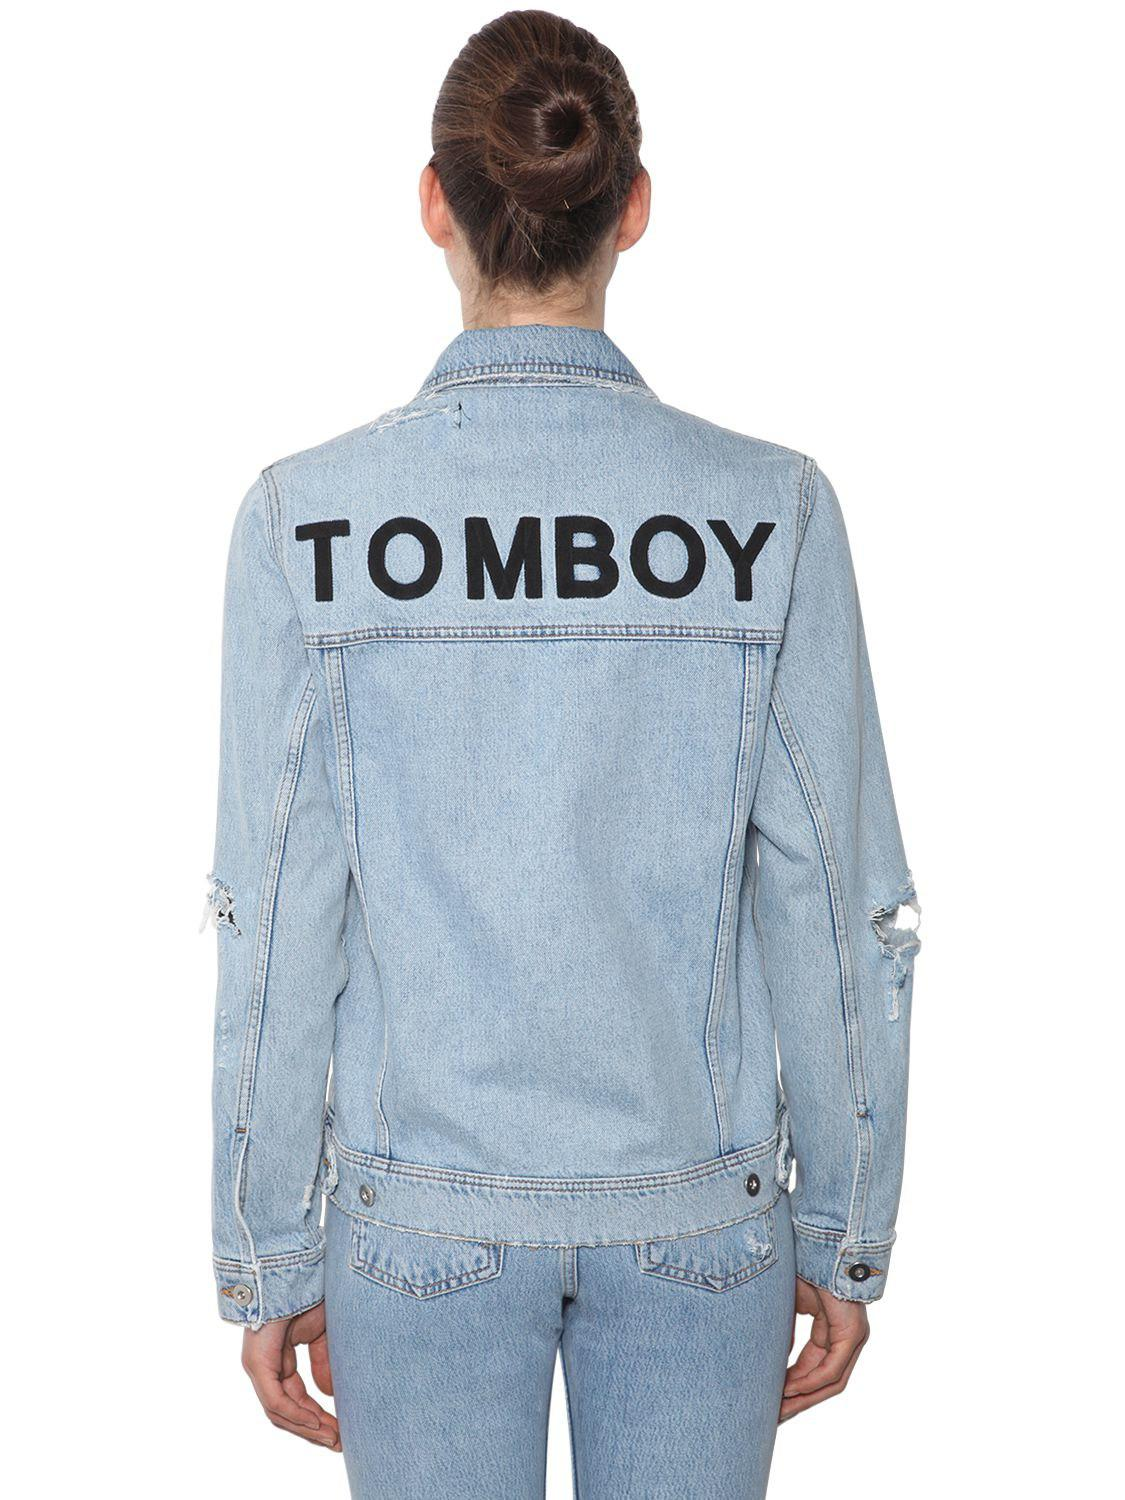 Papa A Tomboy Blue Jacket Denim Women's Cotton Filles vw5qx7dv